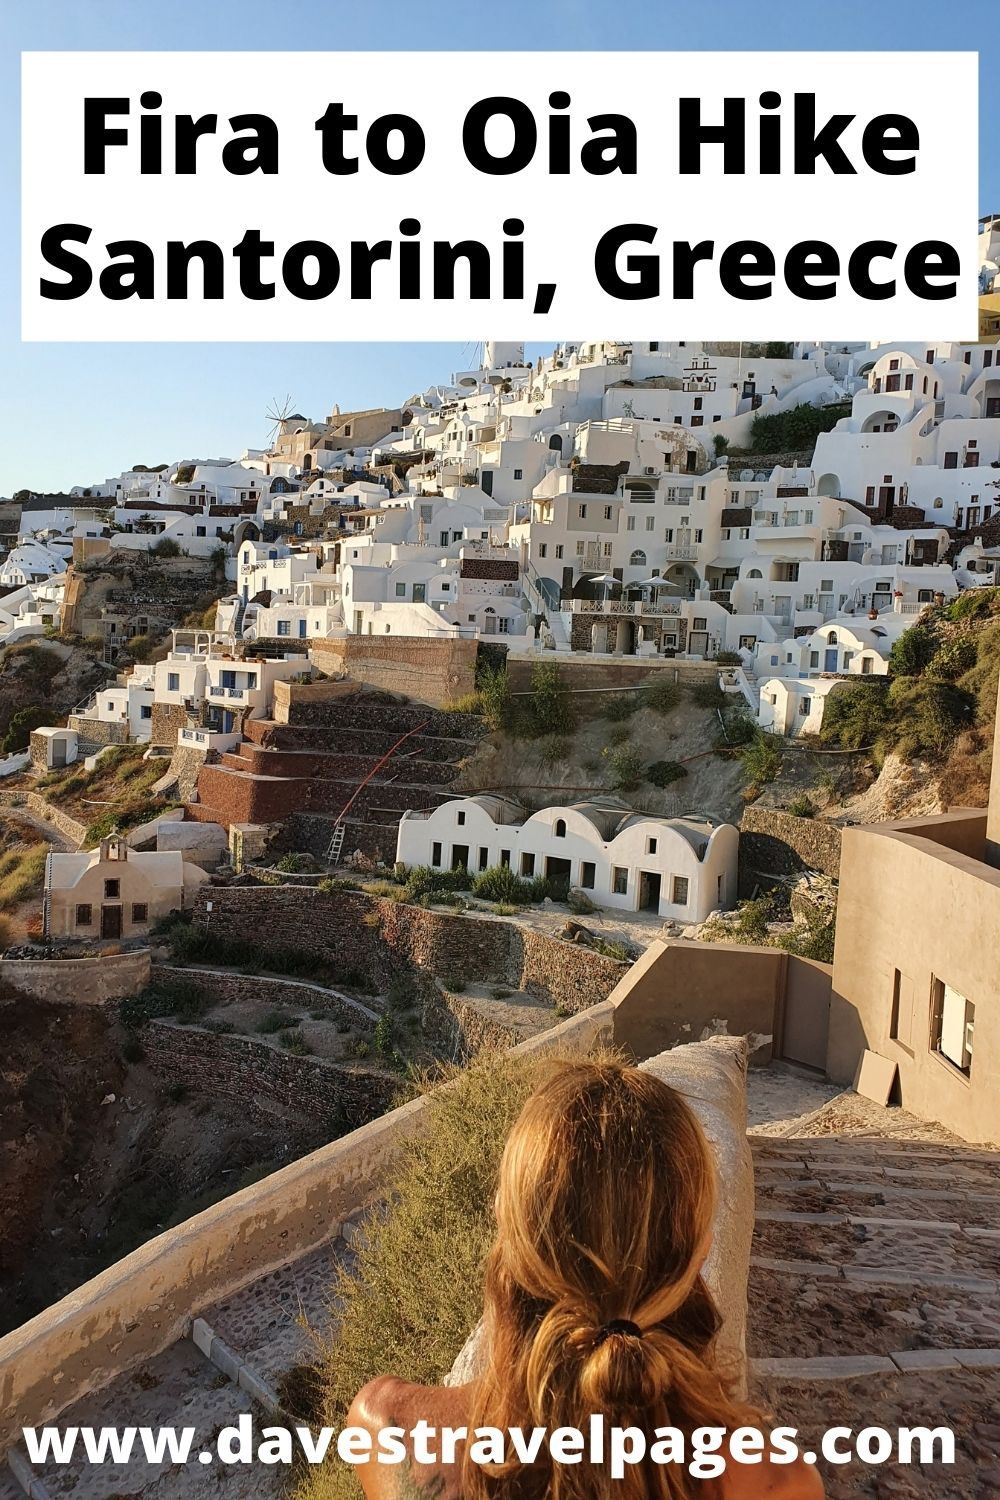 How to hike from Fira to Oia in Santorini, Greece